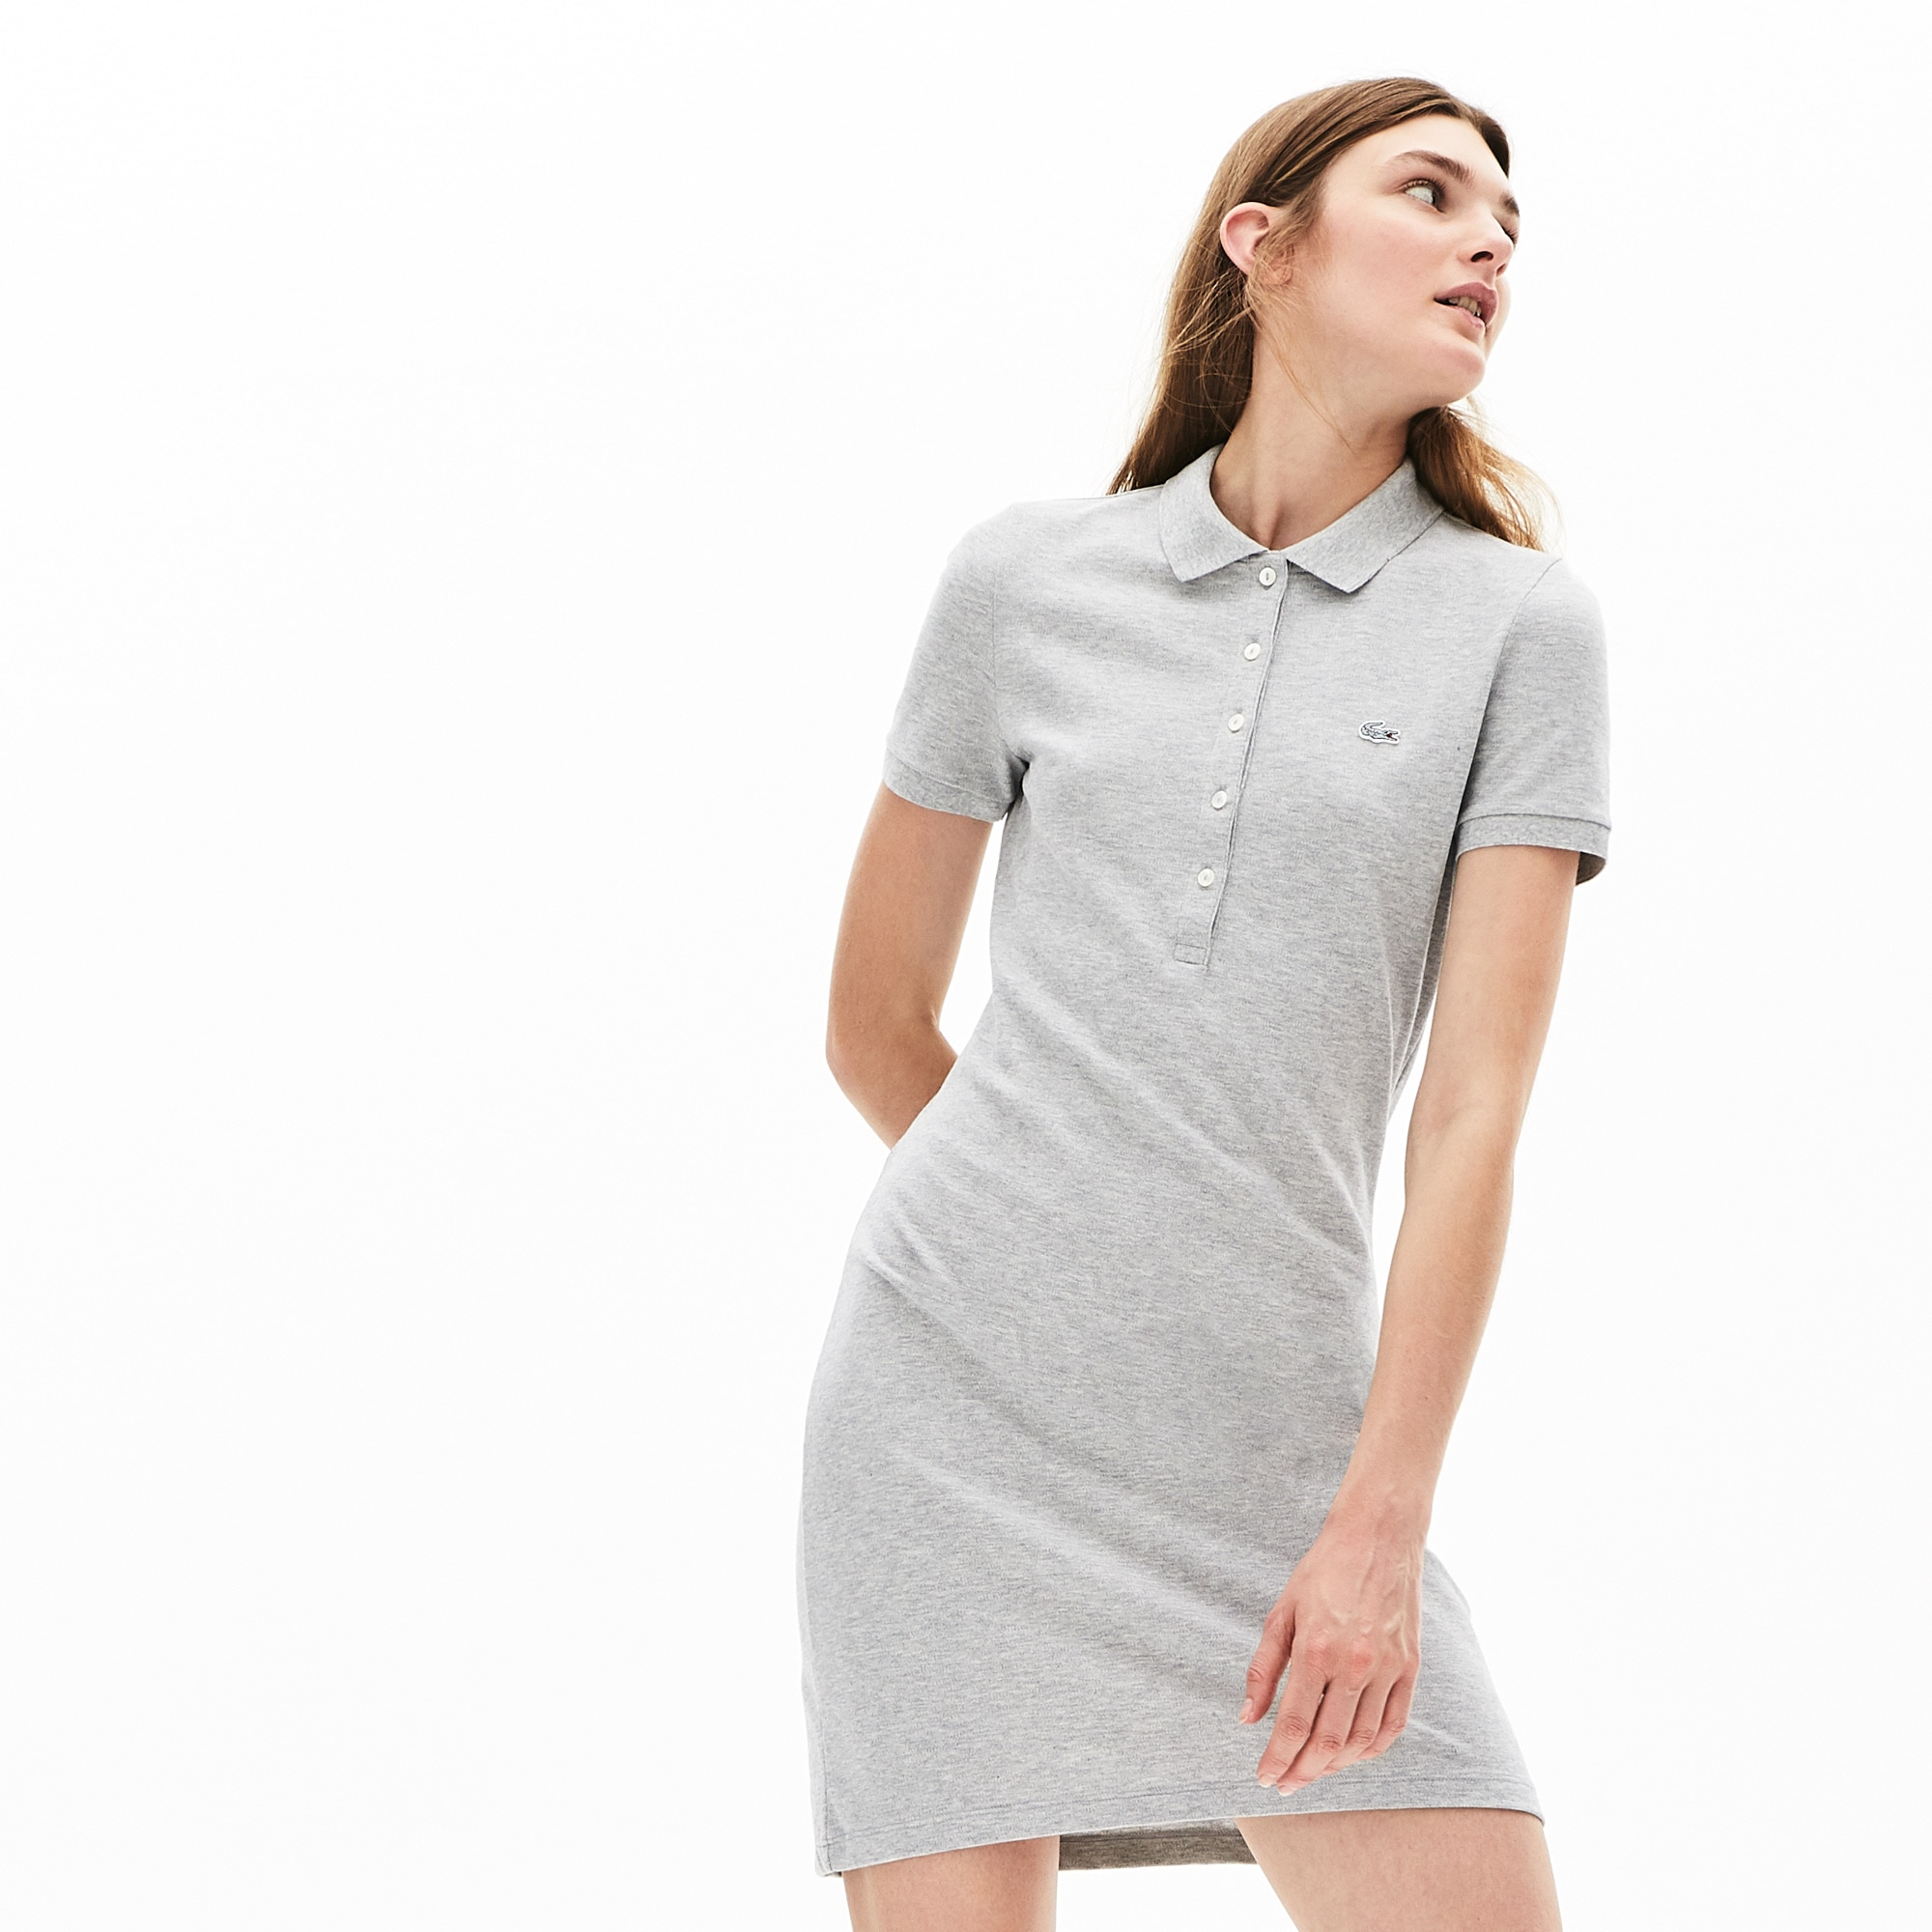 hot-selling genuine excellent quality website for discount Dresses and Skirts | Women's Clothing | LACOSTE